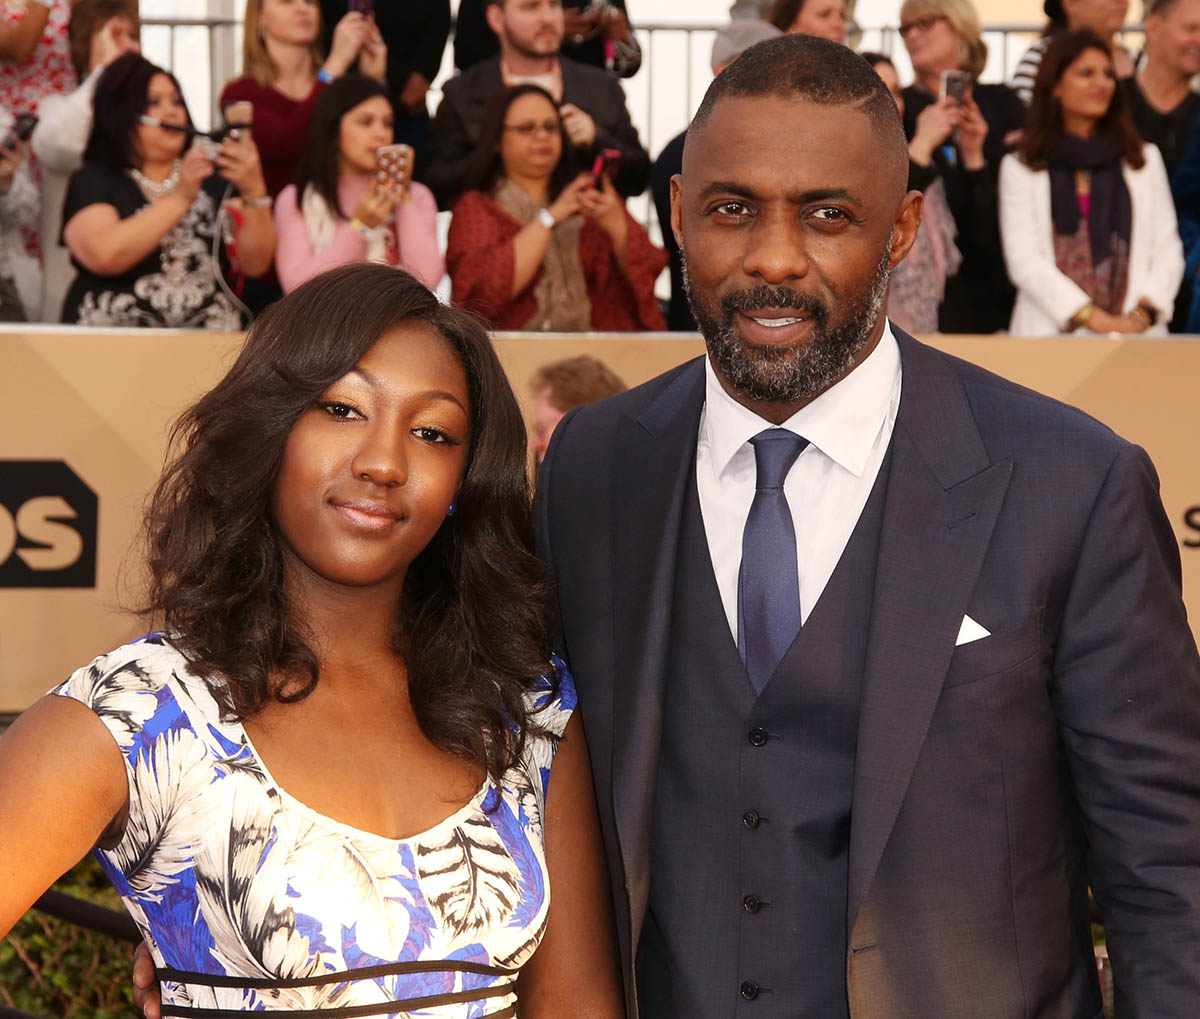 Isan Elba and dad Idris Elba attend 2nd Annual Screen Actors Guild Awards in LA